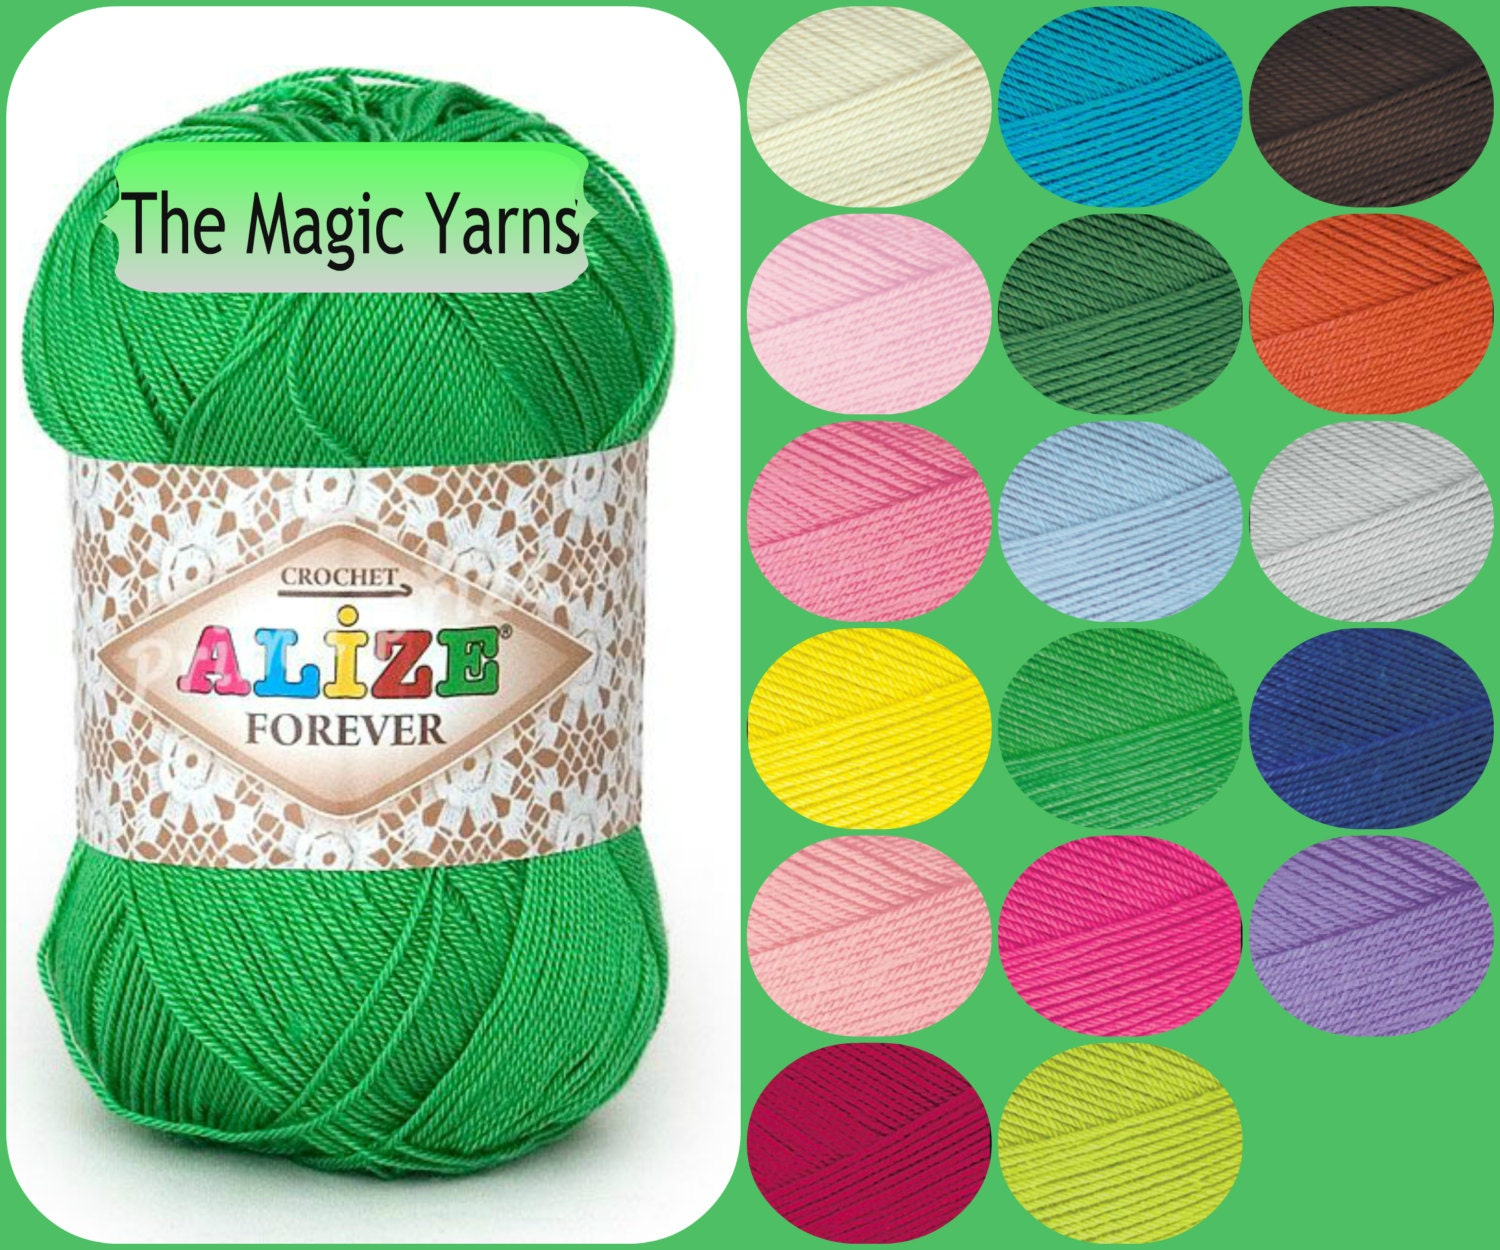 Yarn Alize: properties, features, reviews 98